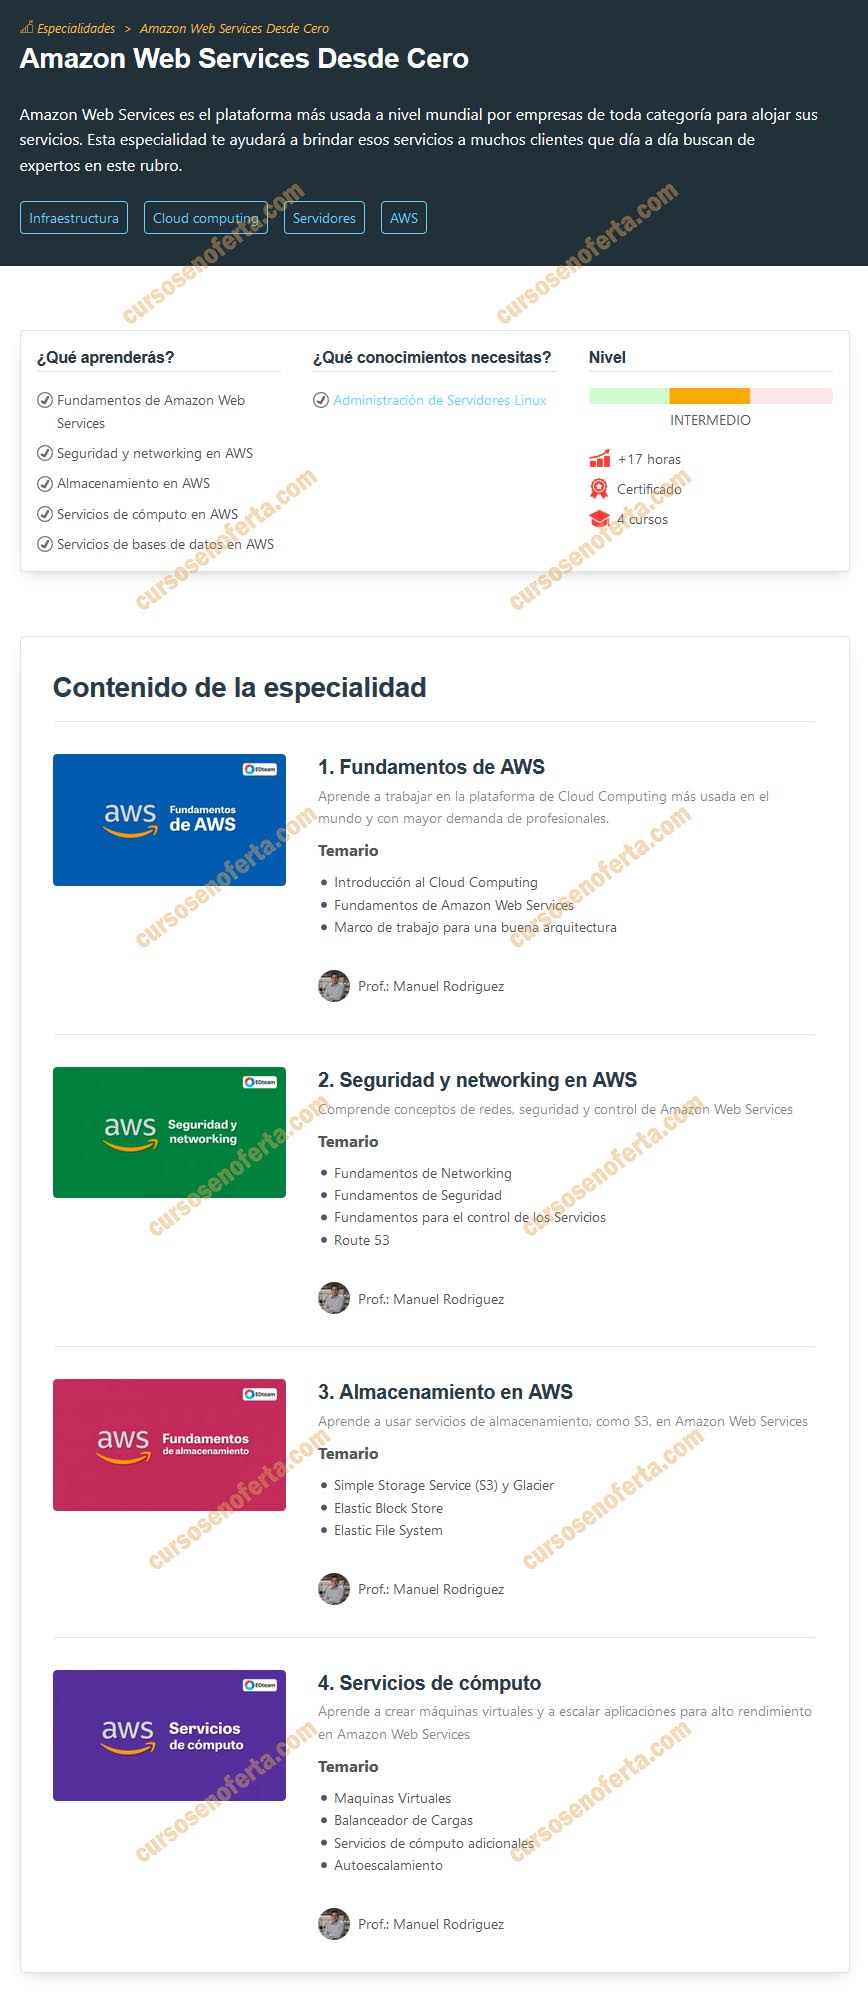 Amazon Web Services Desde Cero